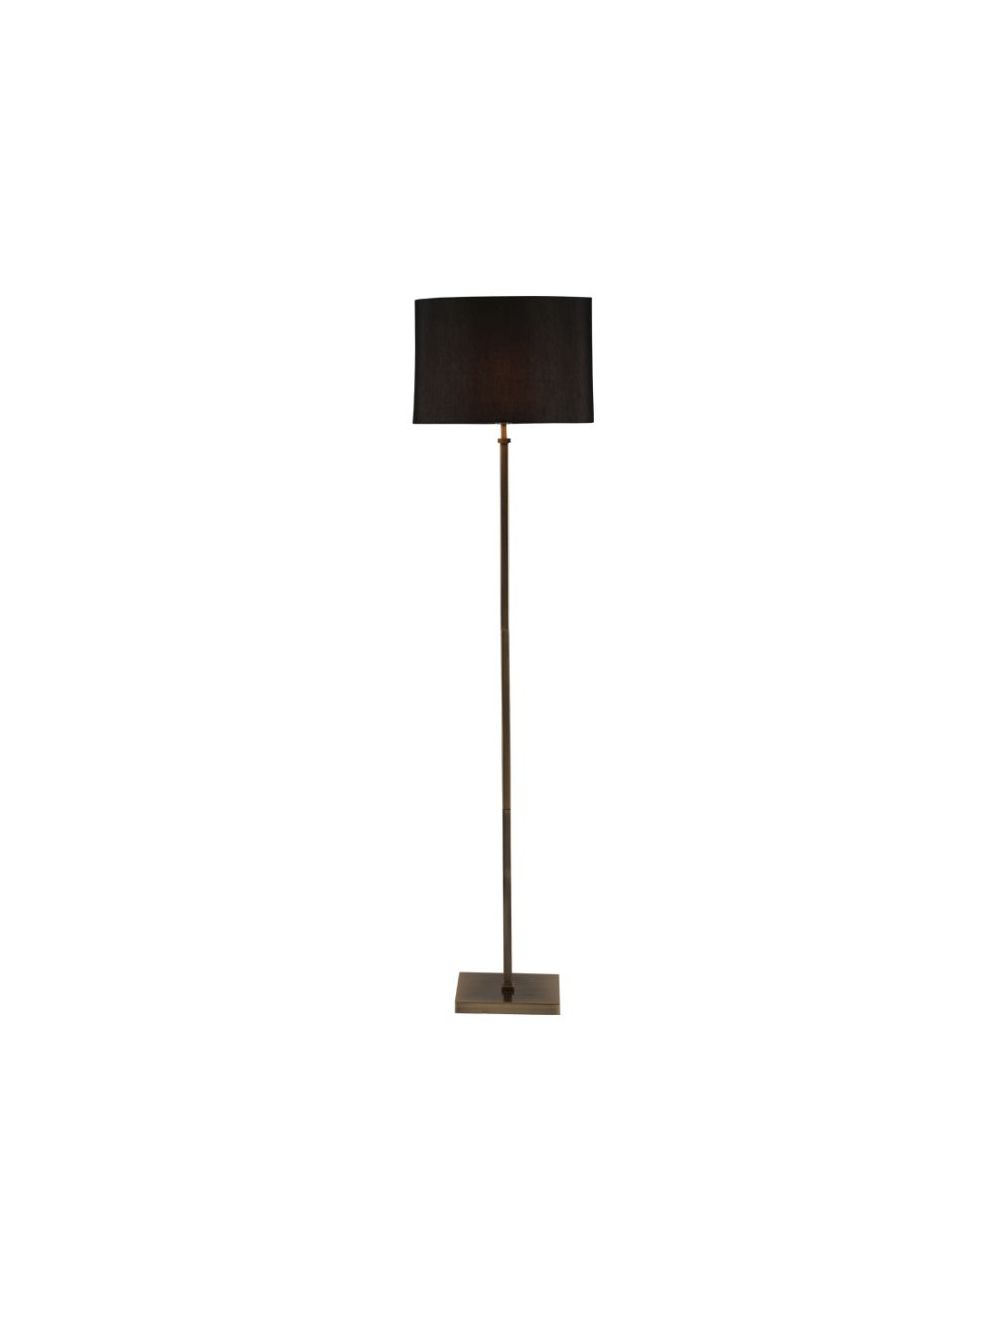 Hilton Antique Brass Square Stick Floor Lamp Black Shade 32 080 K with dimensions 1000 X 1320